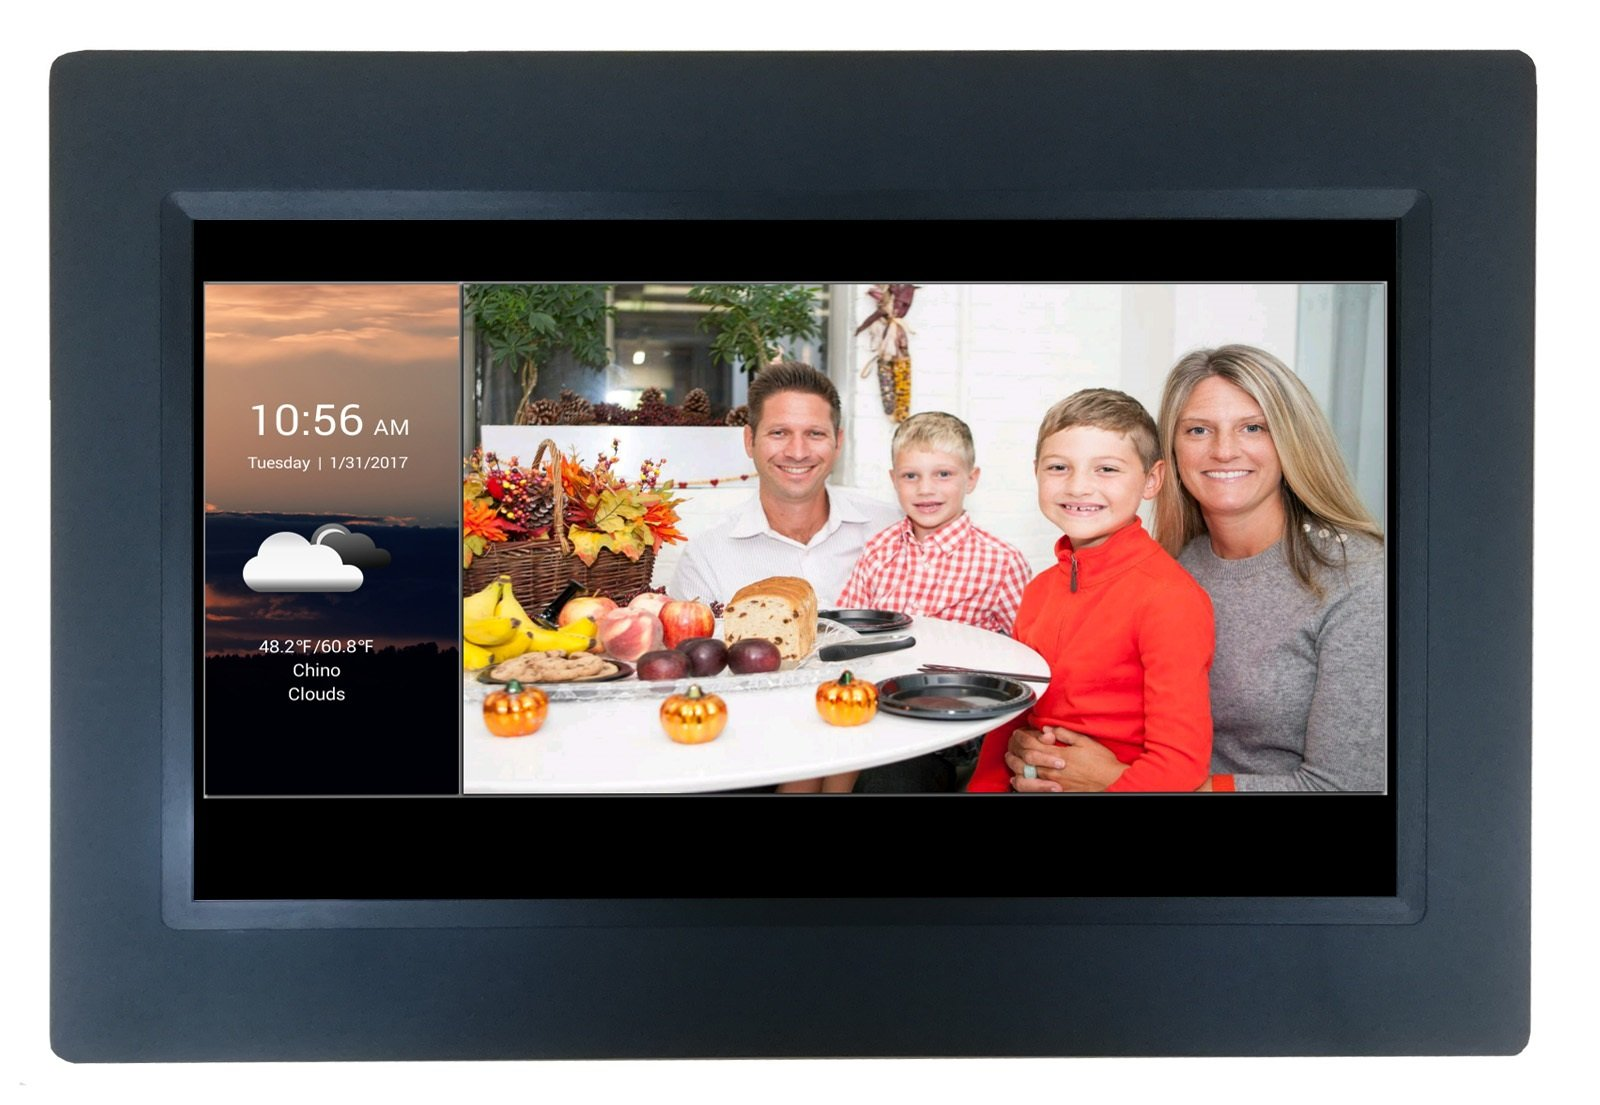 [LATEST UPDATE] 10'' Smart WiFi Cloud Digital Photo Frame with Touchscreen - includes 5GB free Cloud storage, iPhone & Android APP, Facebook, Dropbox, Real-time photos, Movie Playback by Sungale